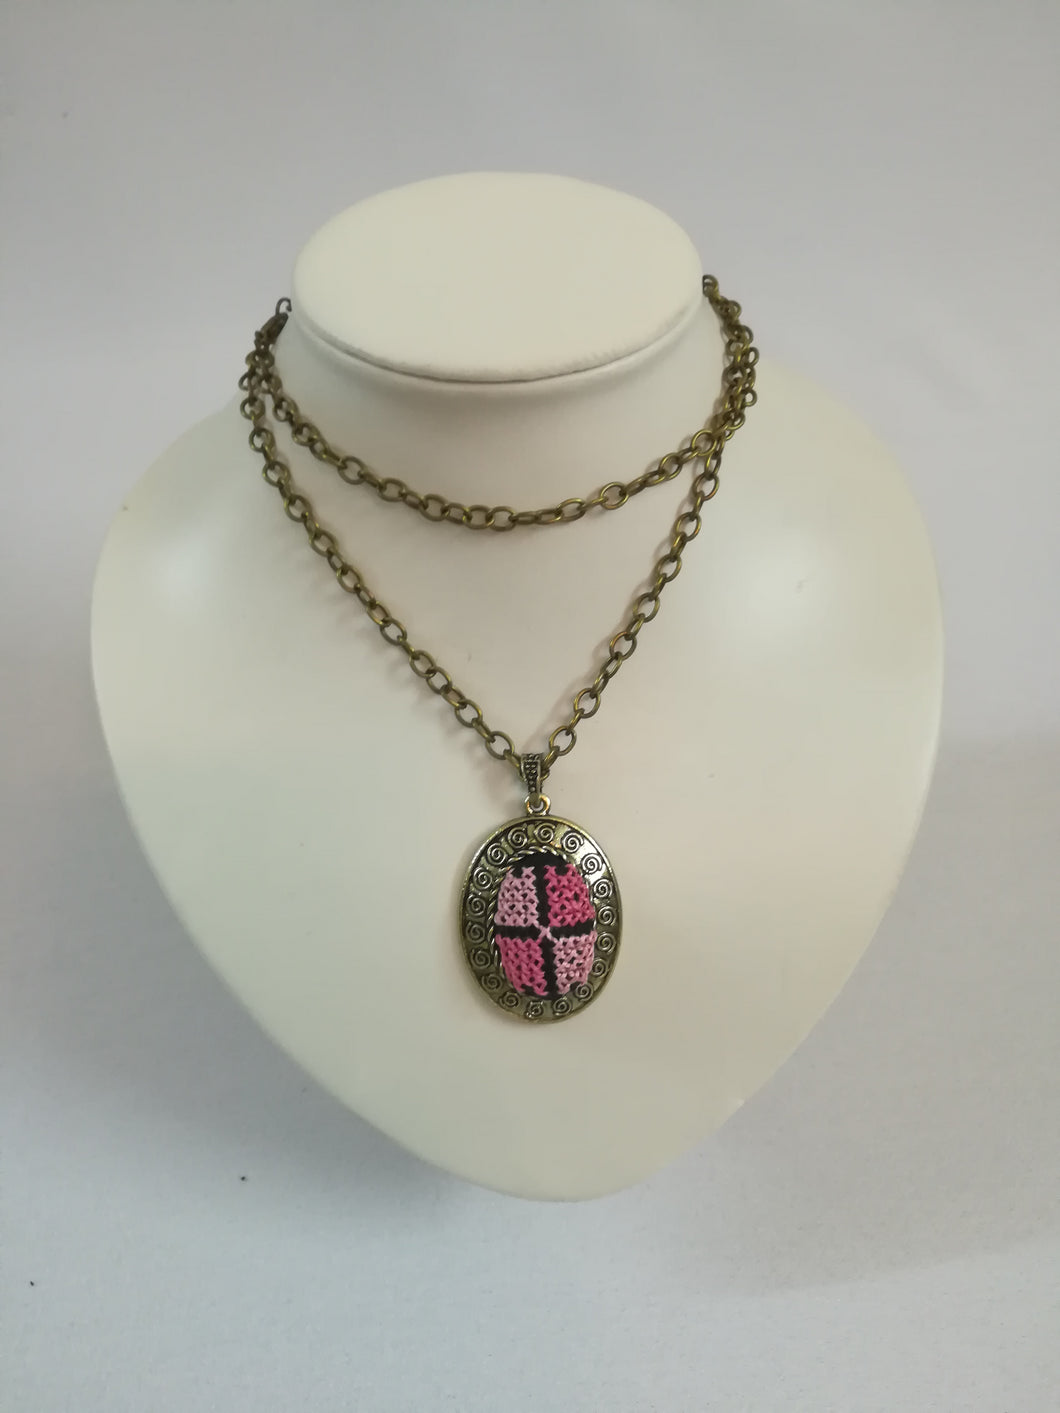 Golden color necklace with pink embroidered pendant - Falastini Brand